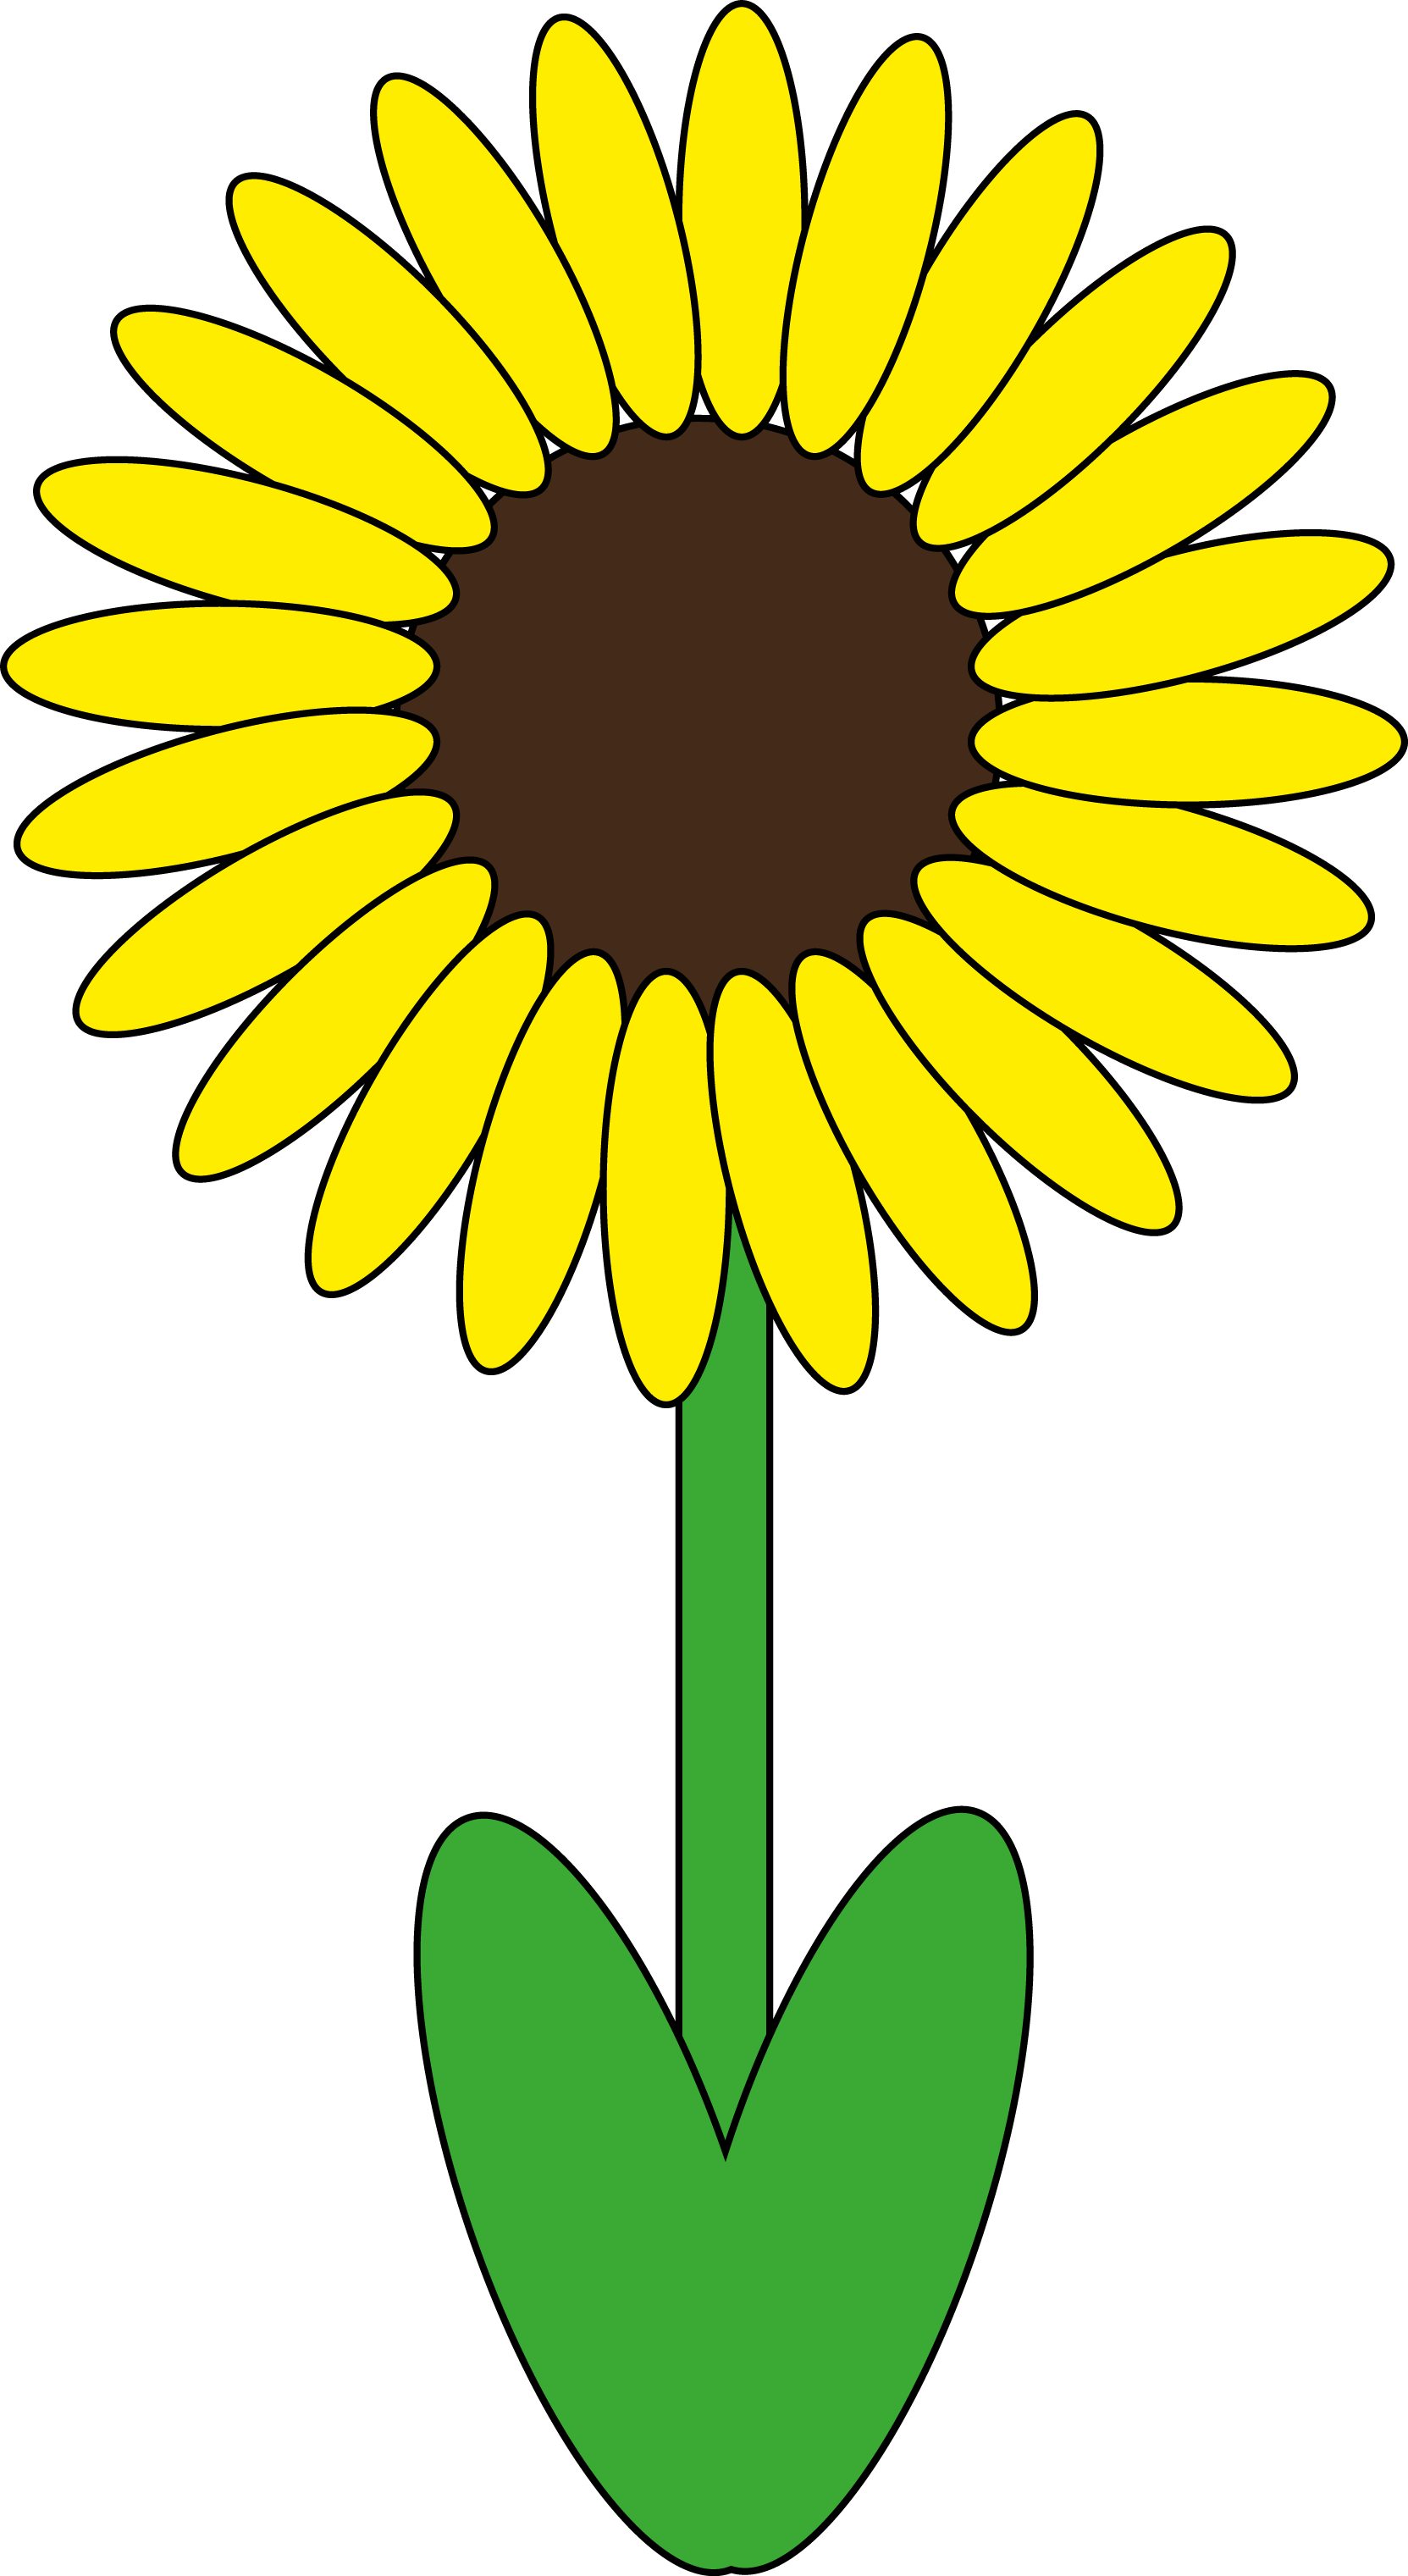 Daisy clipart sunflower. Made by kdp pinterest